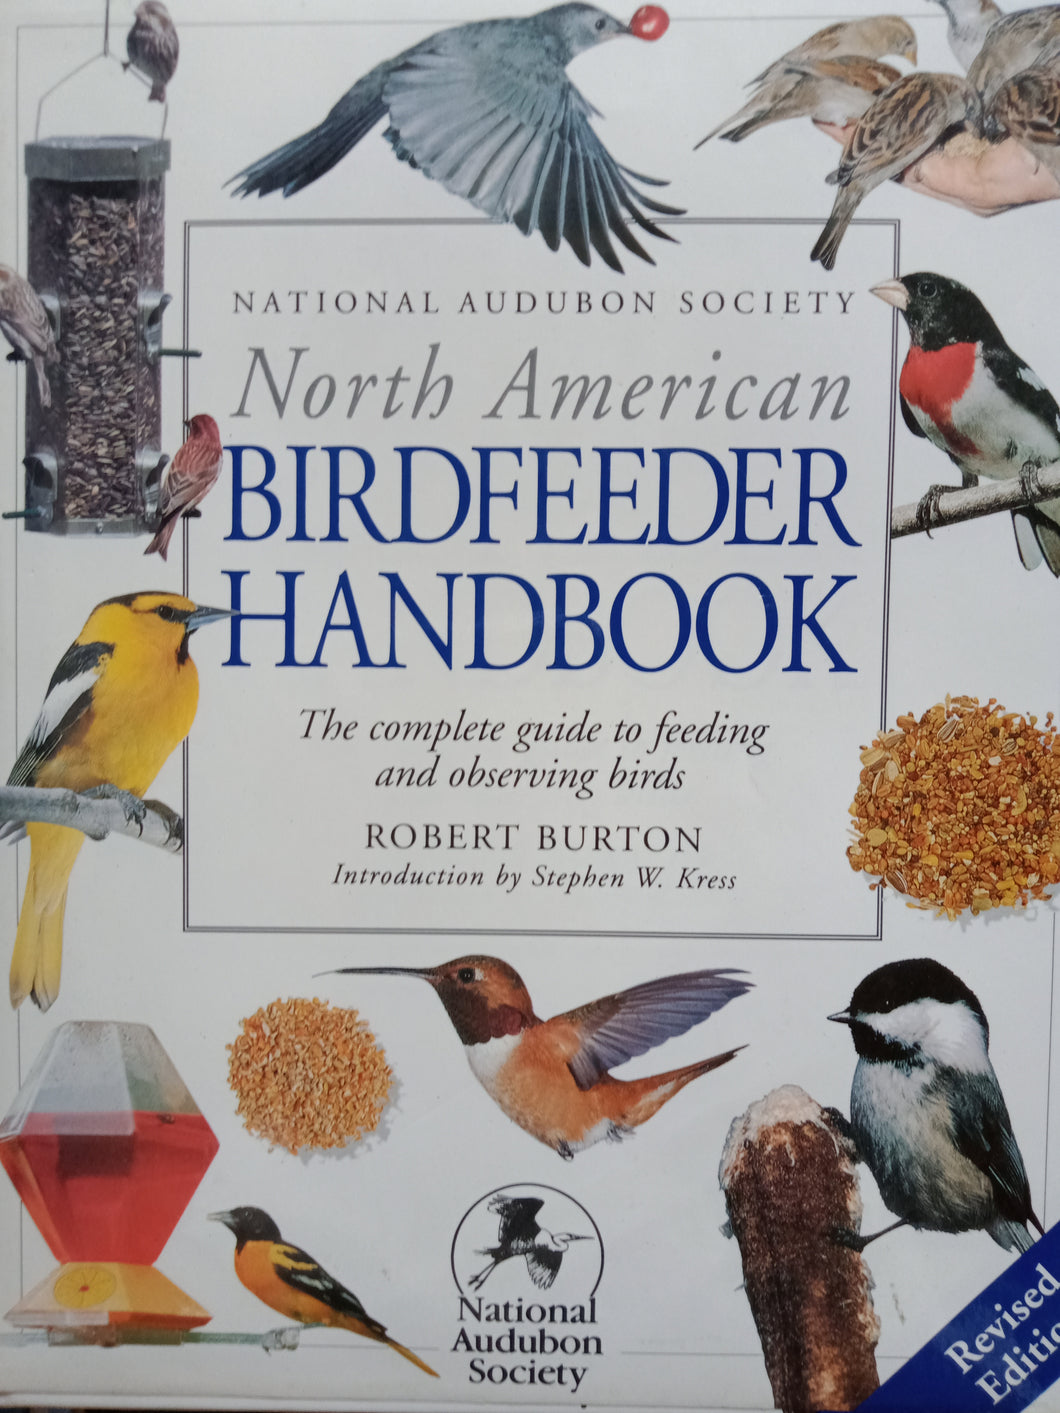 Bird feeder Handbook by Robert Burton